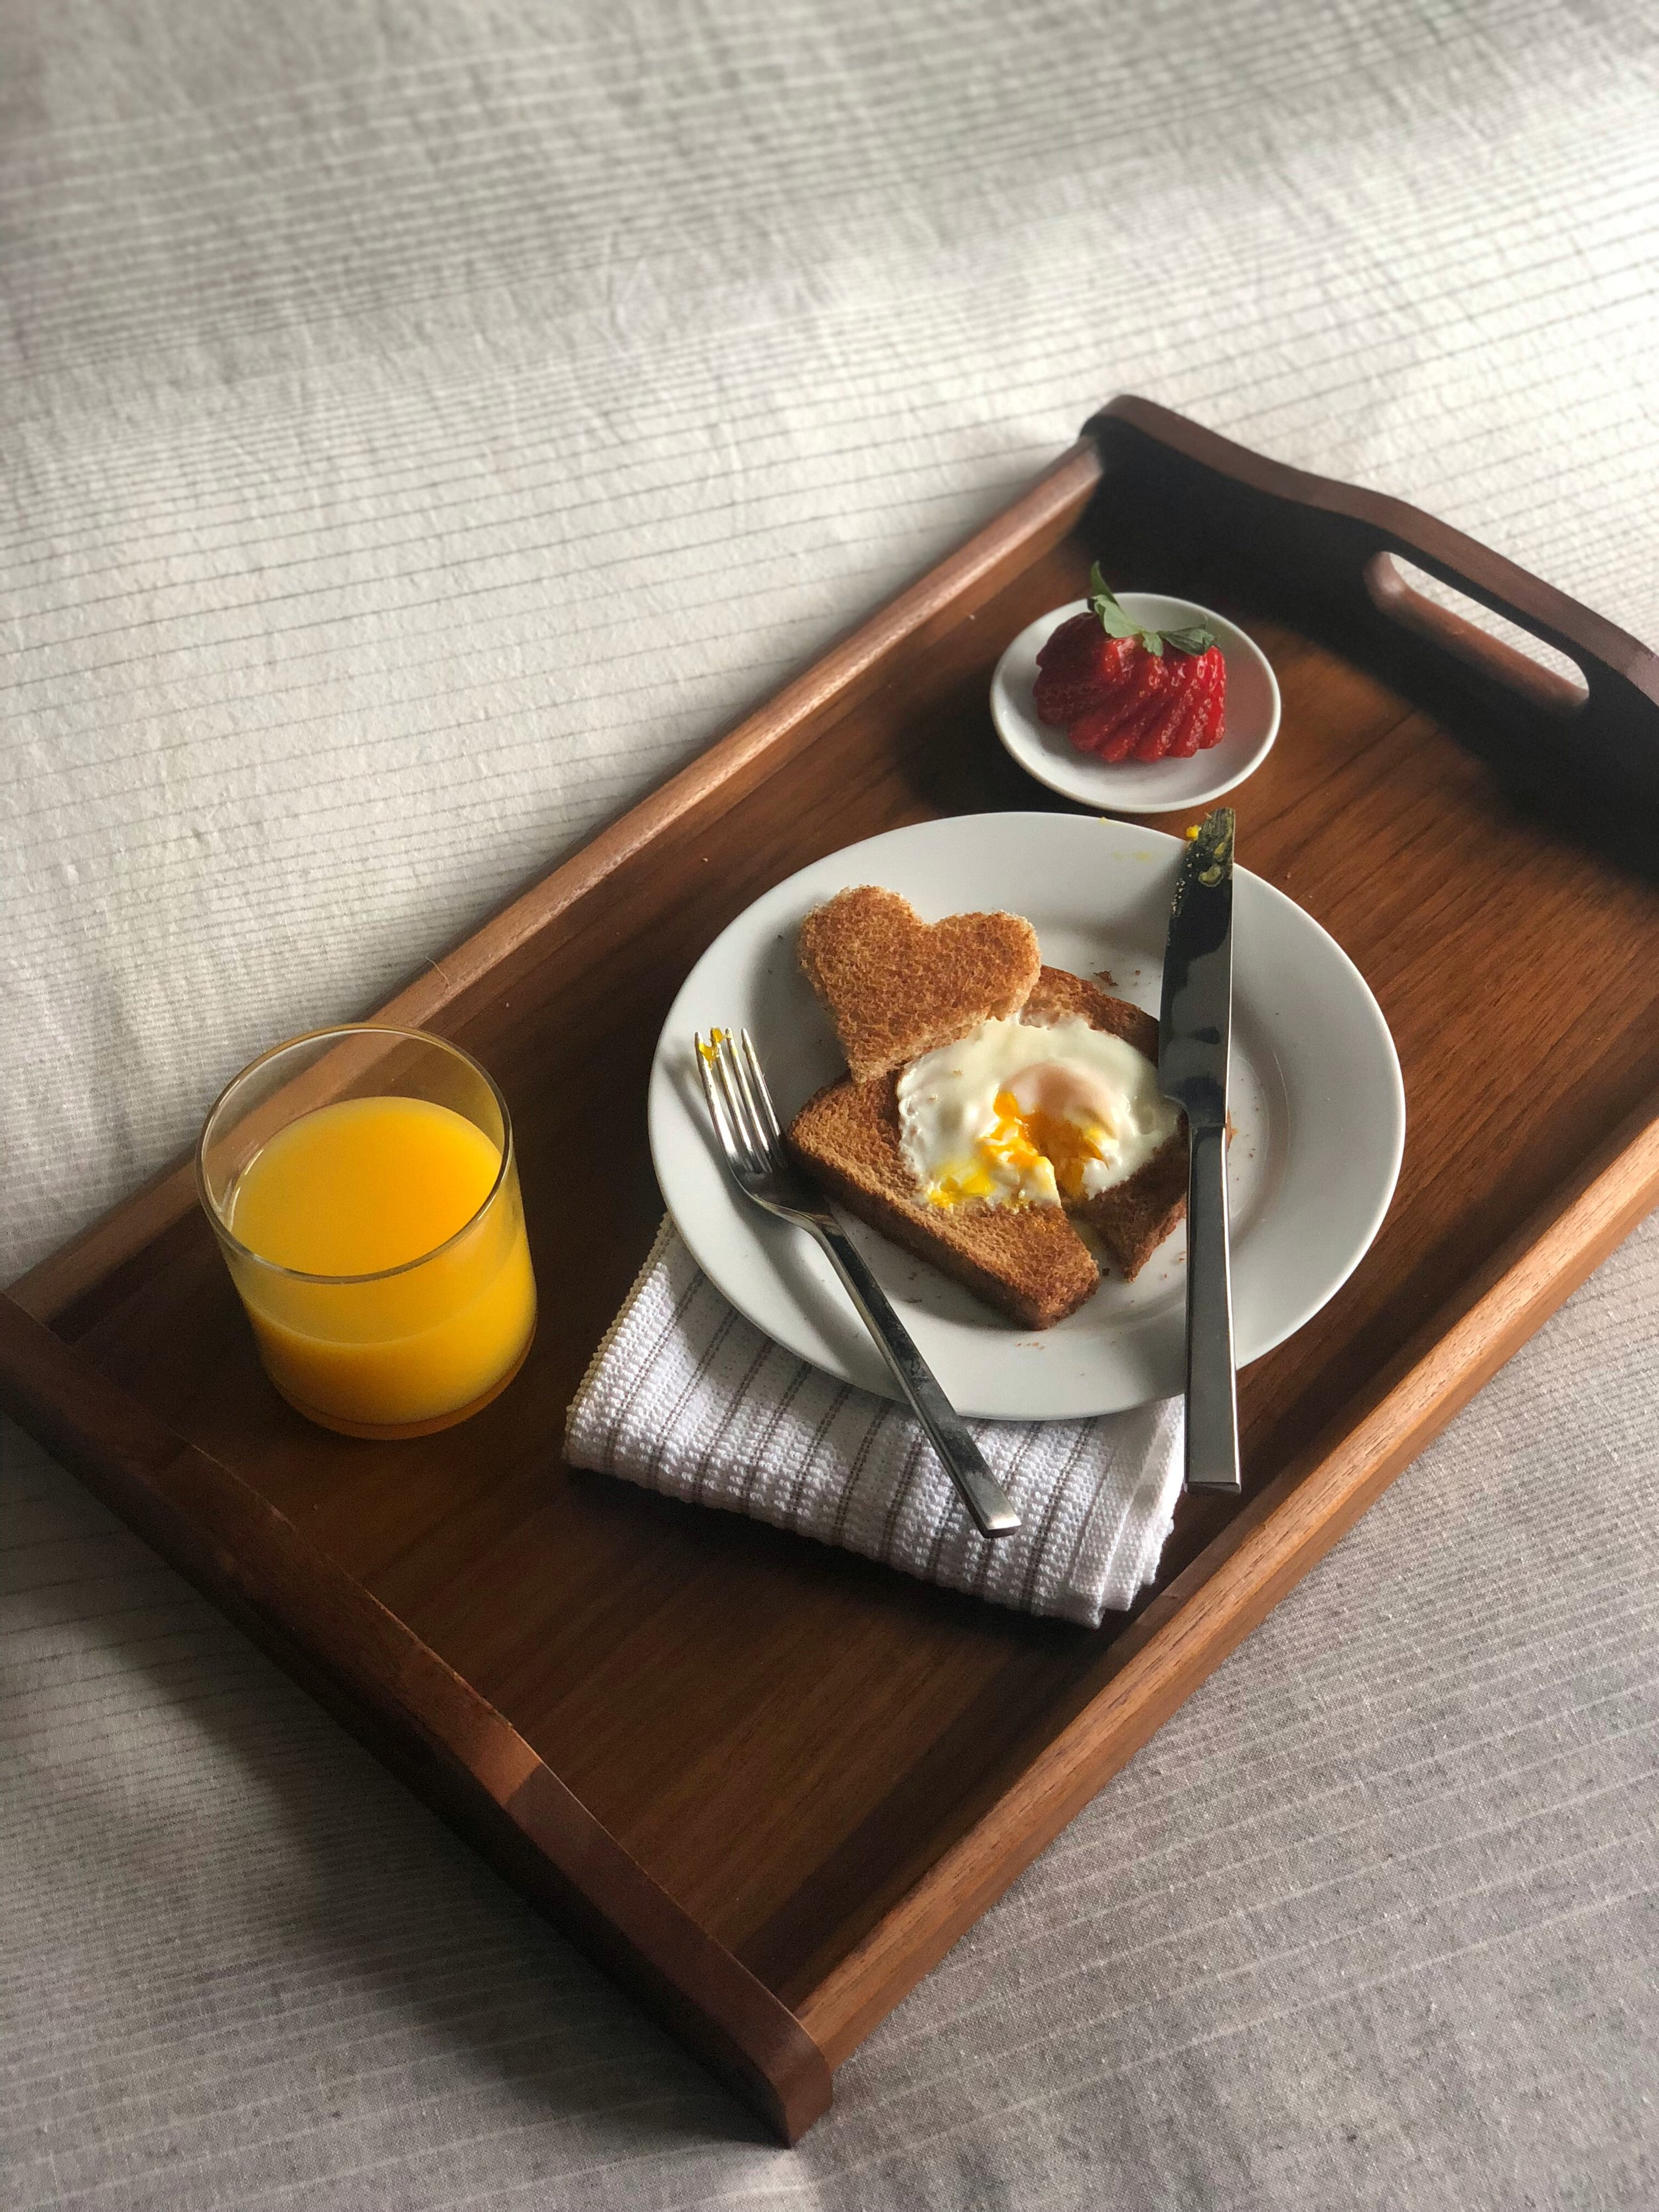 Who could say no to breakfast in bed?